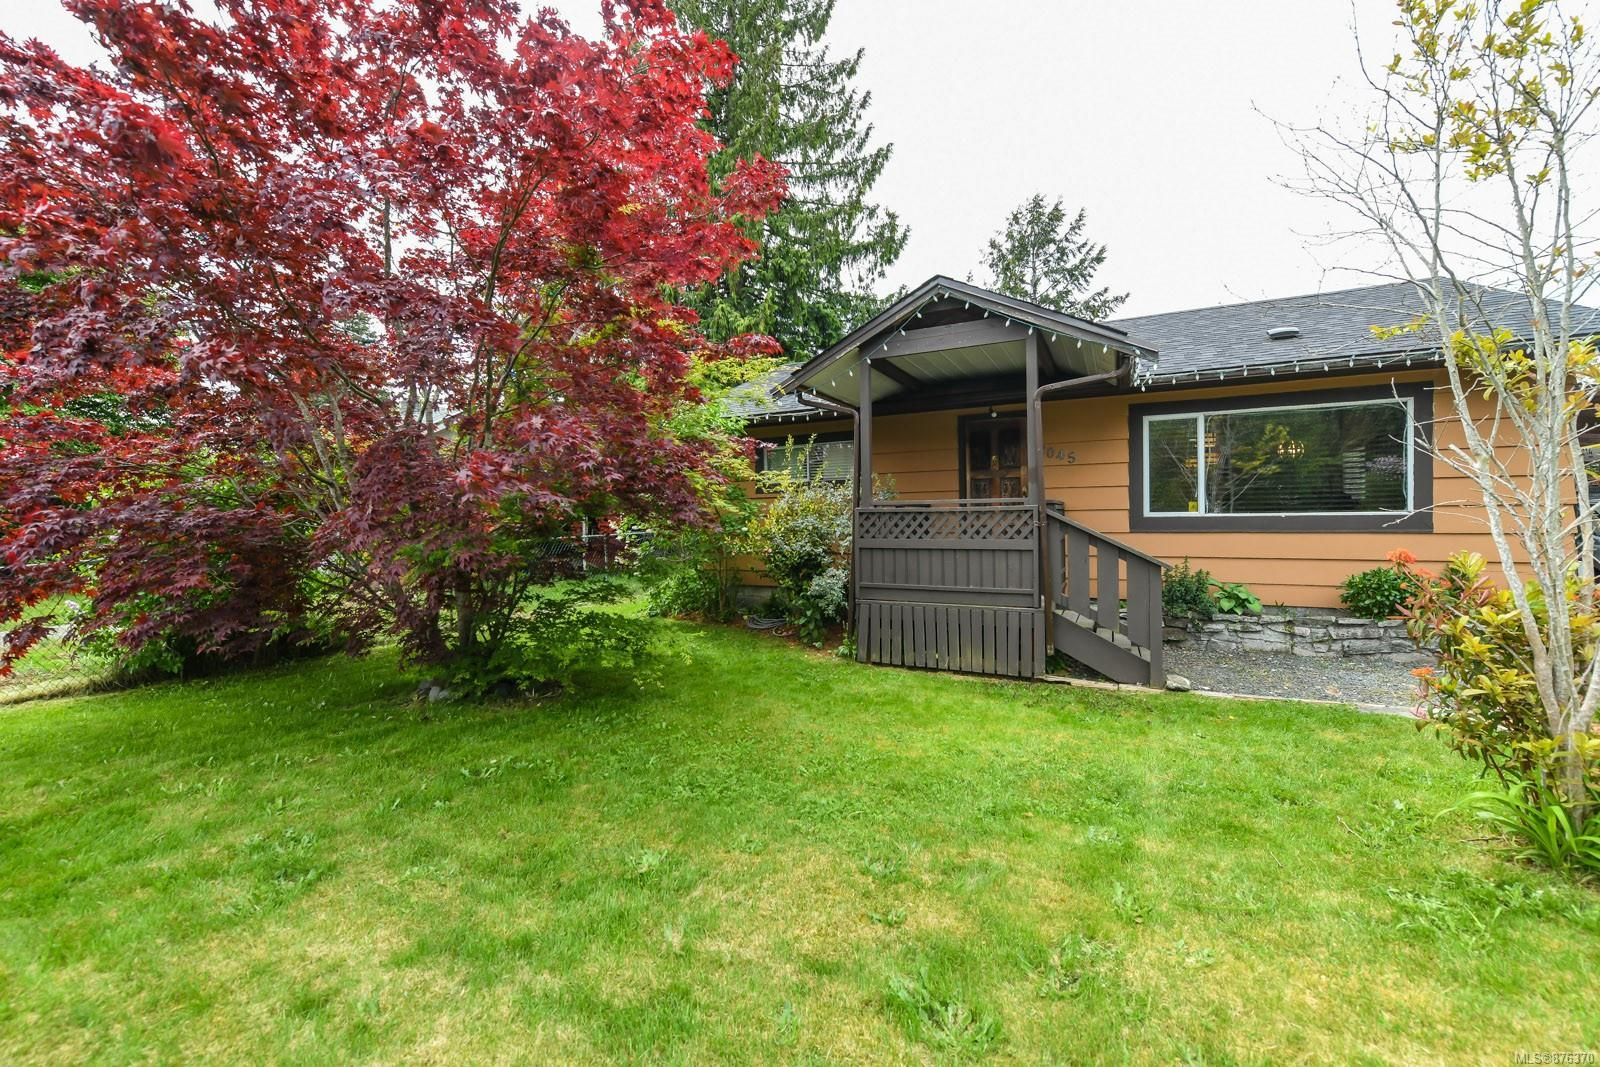 Main Photo: 2045 Willemar Ave in : CV Courtenay City House for sale (Comox Valley)  : MLS®# 876370